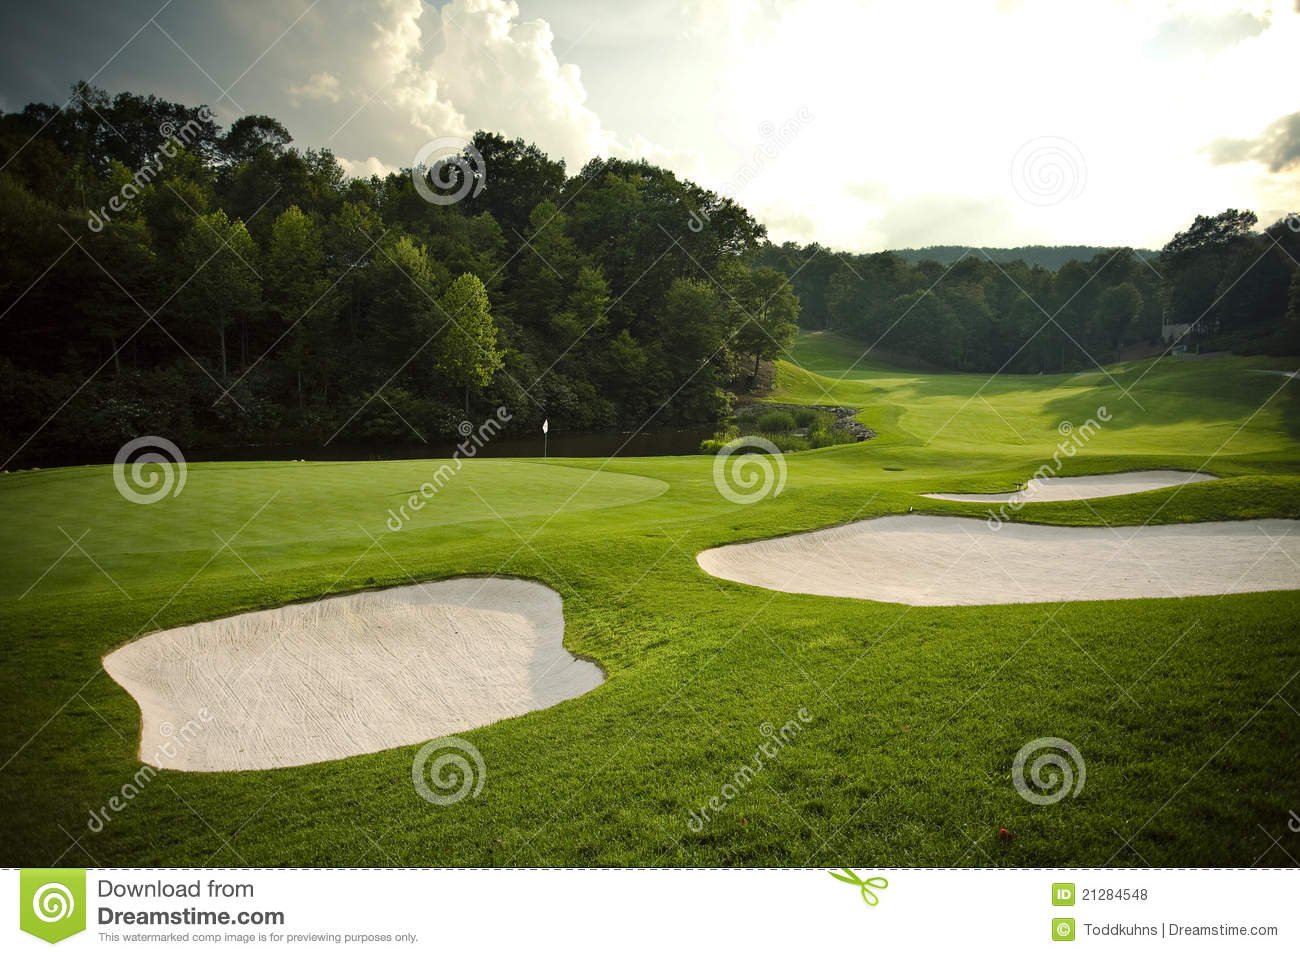 10 Free Stock Photos Golf Images